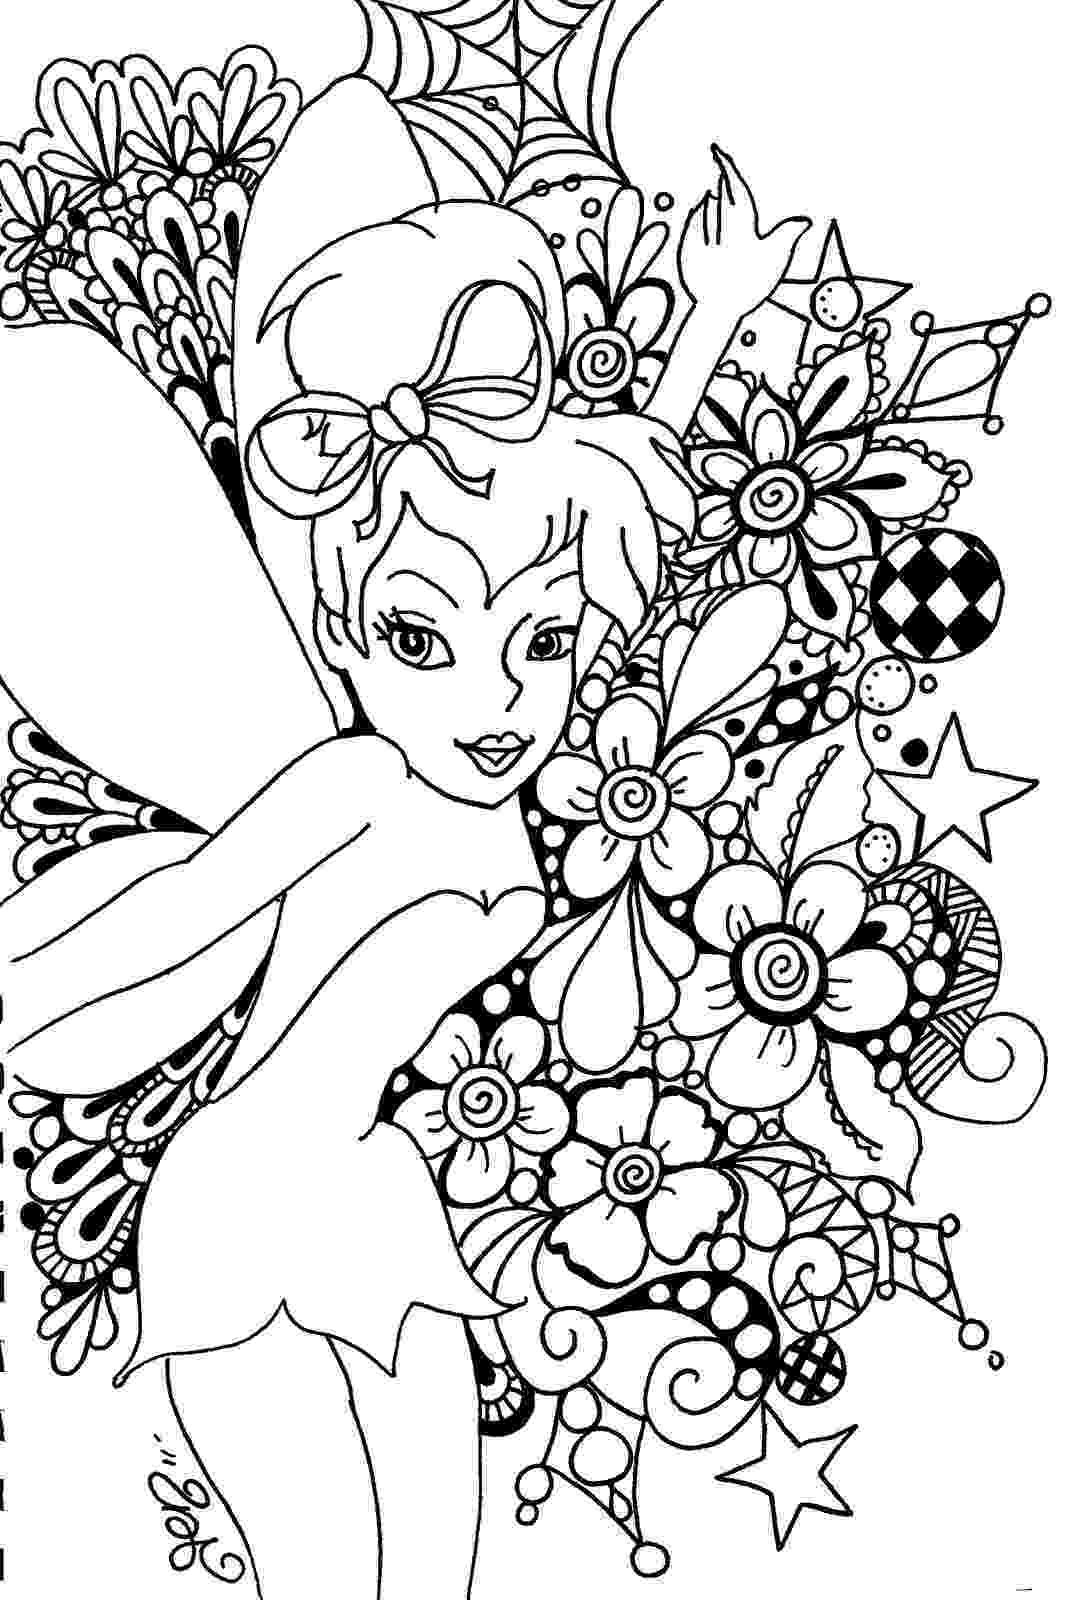 fairy pictures to colour and print fairy coloring pages for adults best coloring pages for kids pictures colour and print fairy to